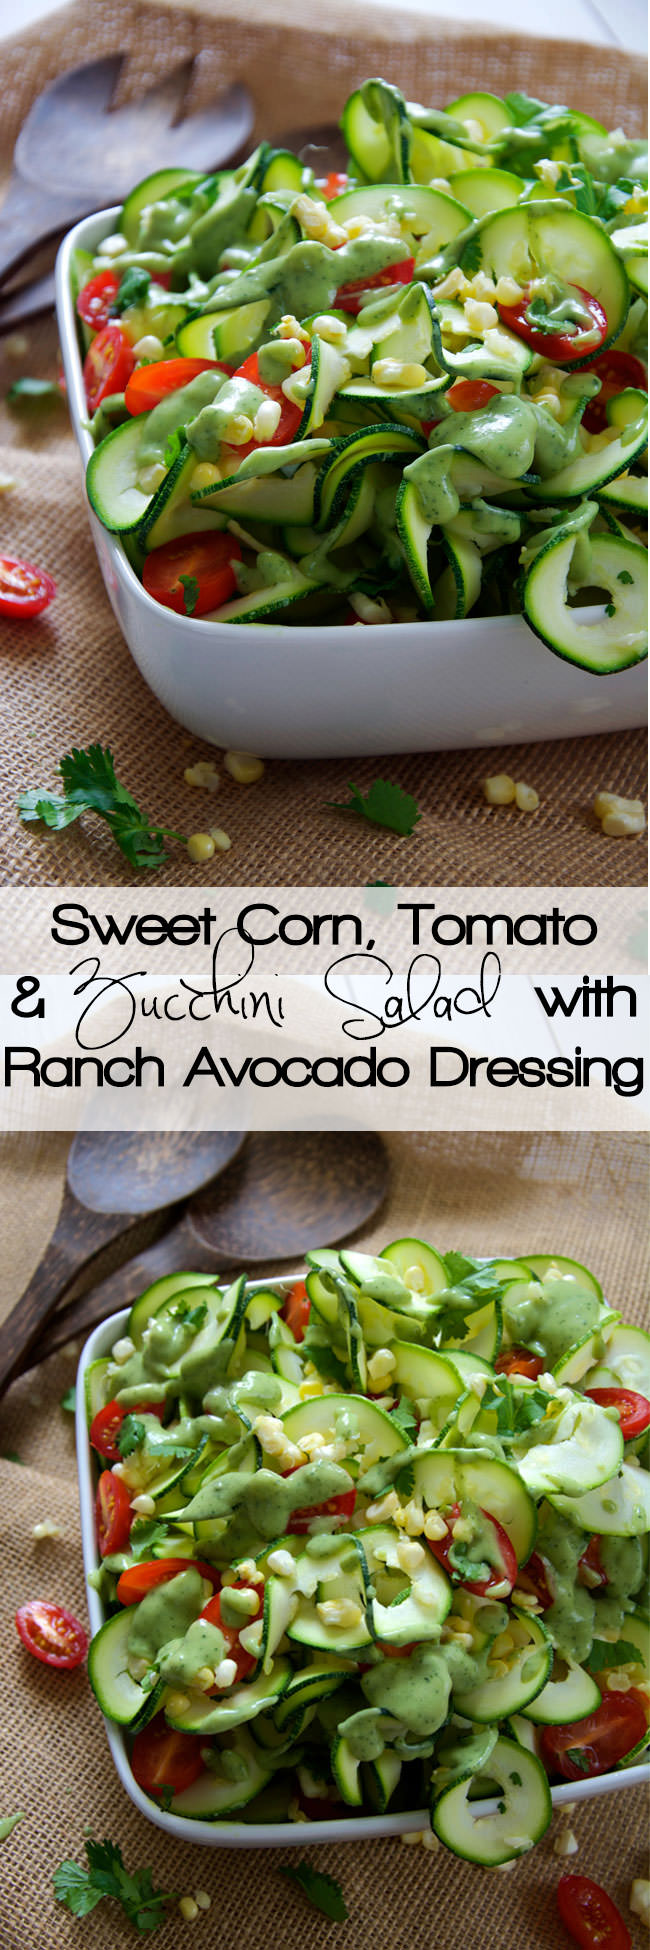 Fresh sweet corn, juicy cherry tomatoes and spiralized zucchini noodles are mixed and topped with a three ingredient dressing of creamy avocado, ranch seasoning and almond milk! A simple, raw zucchini salad that makes the most of end summer ingredients!